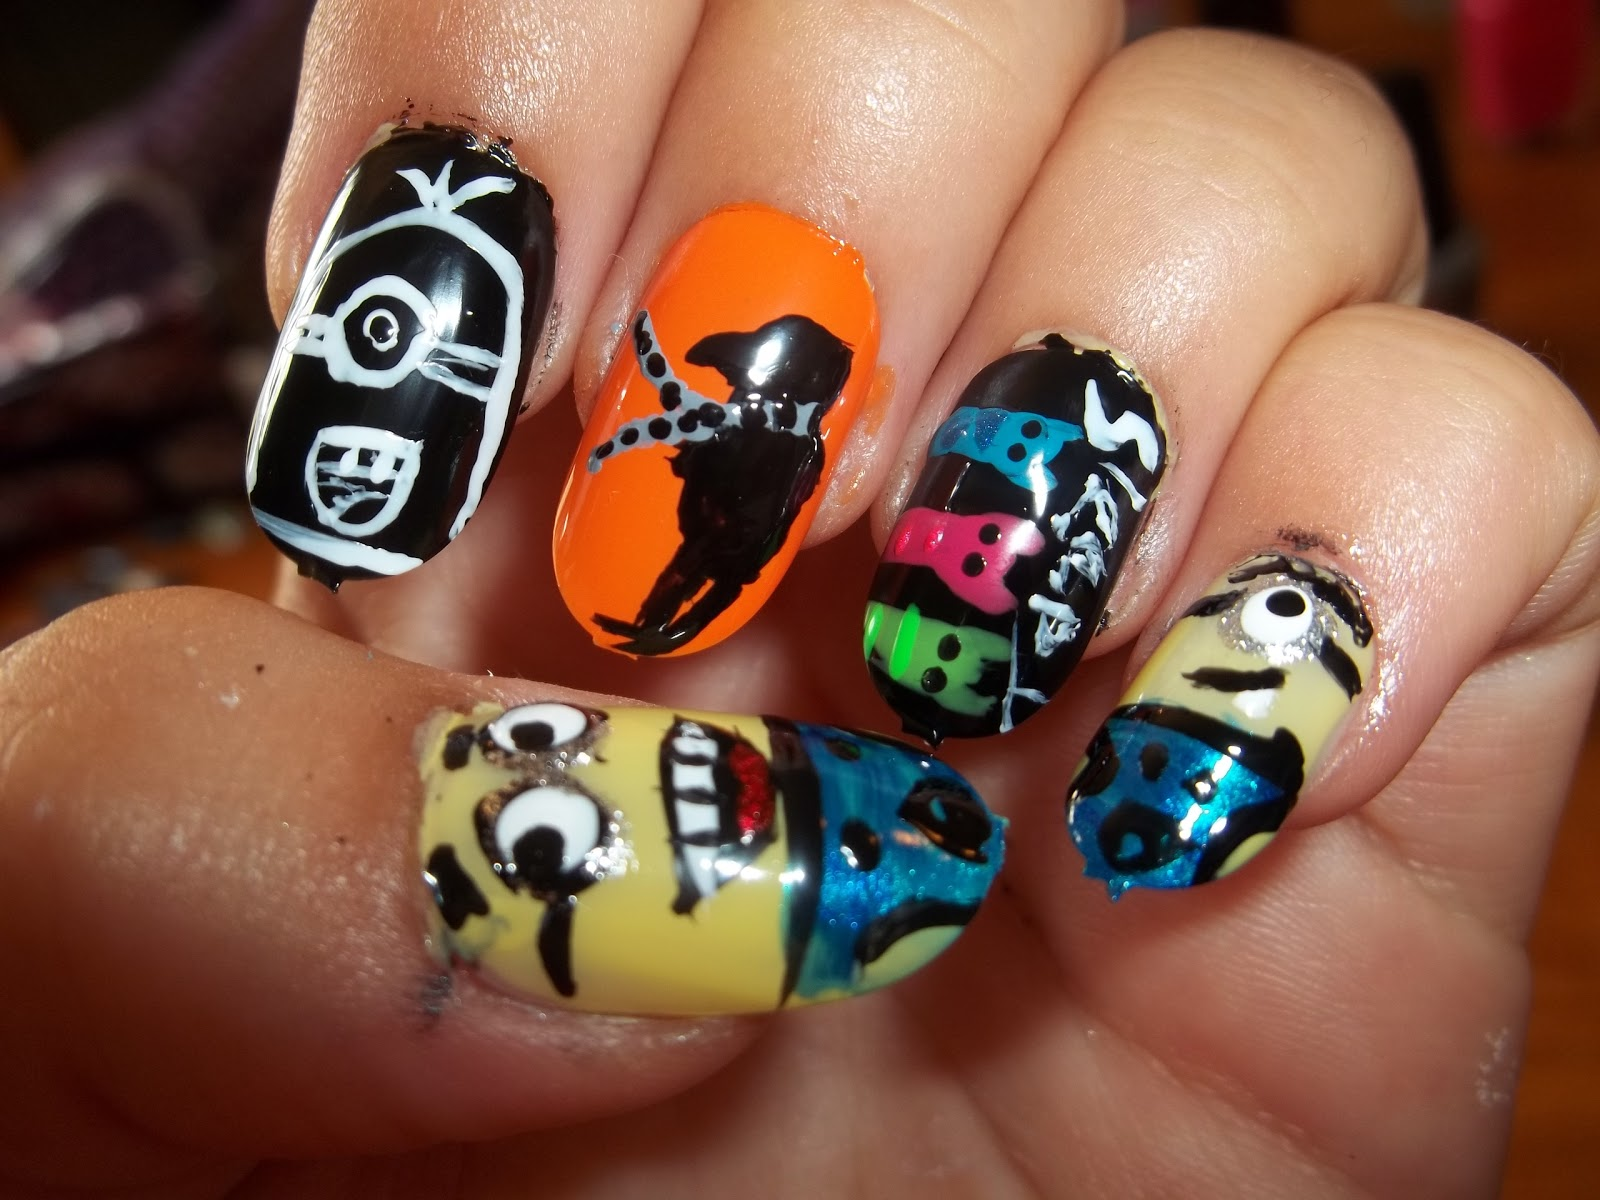 Kick Ass Nails: Despicable Me Nails